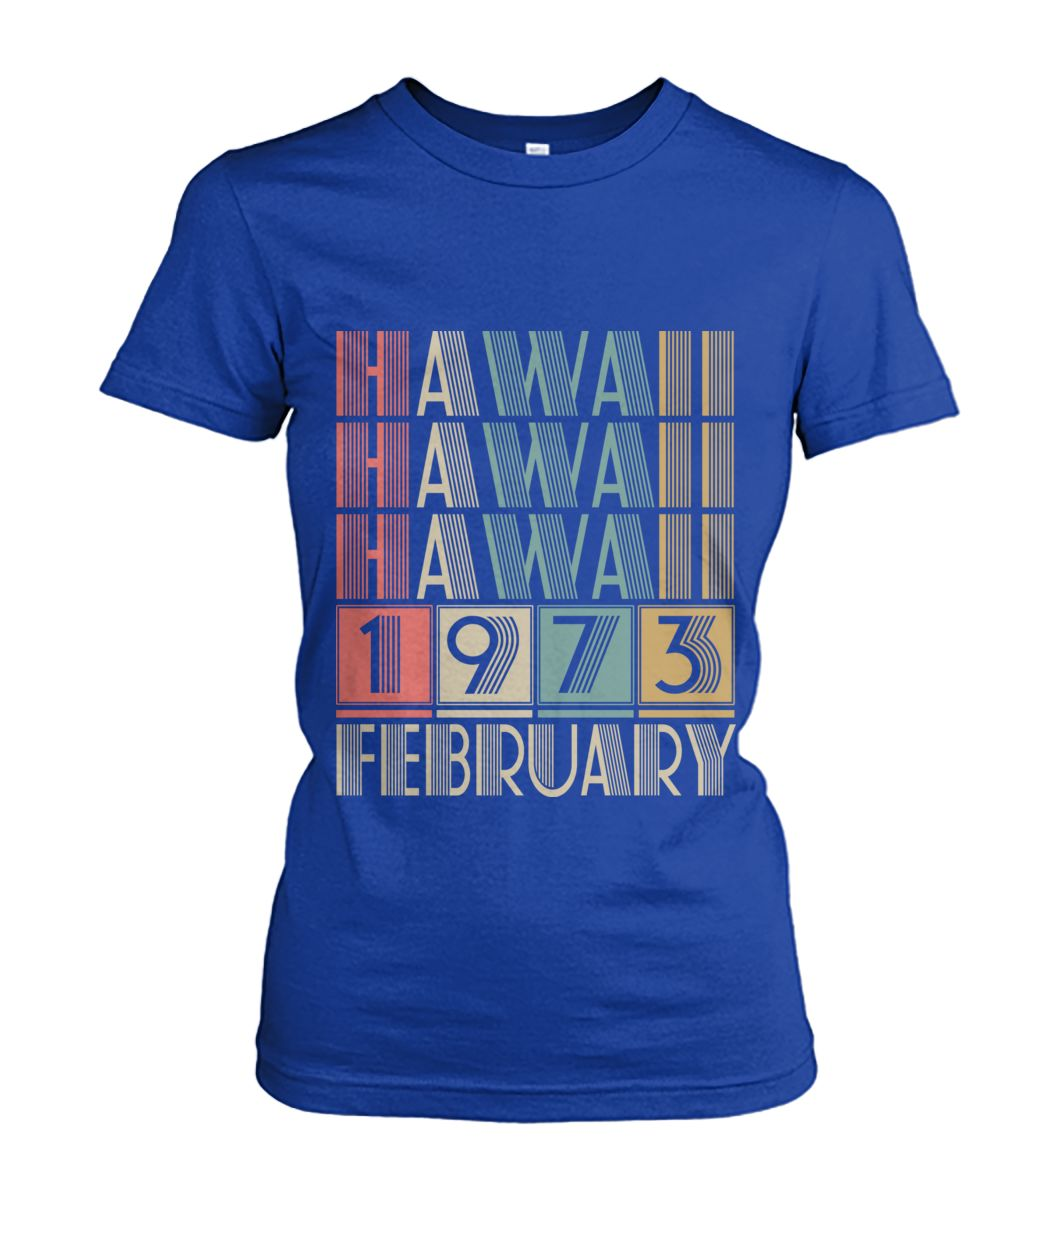 Born in Hawaii in February 1973 t shirt-Short Sleeves - TEEHOT.COM